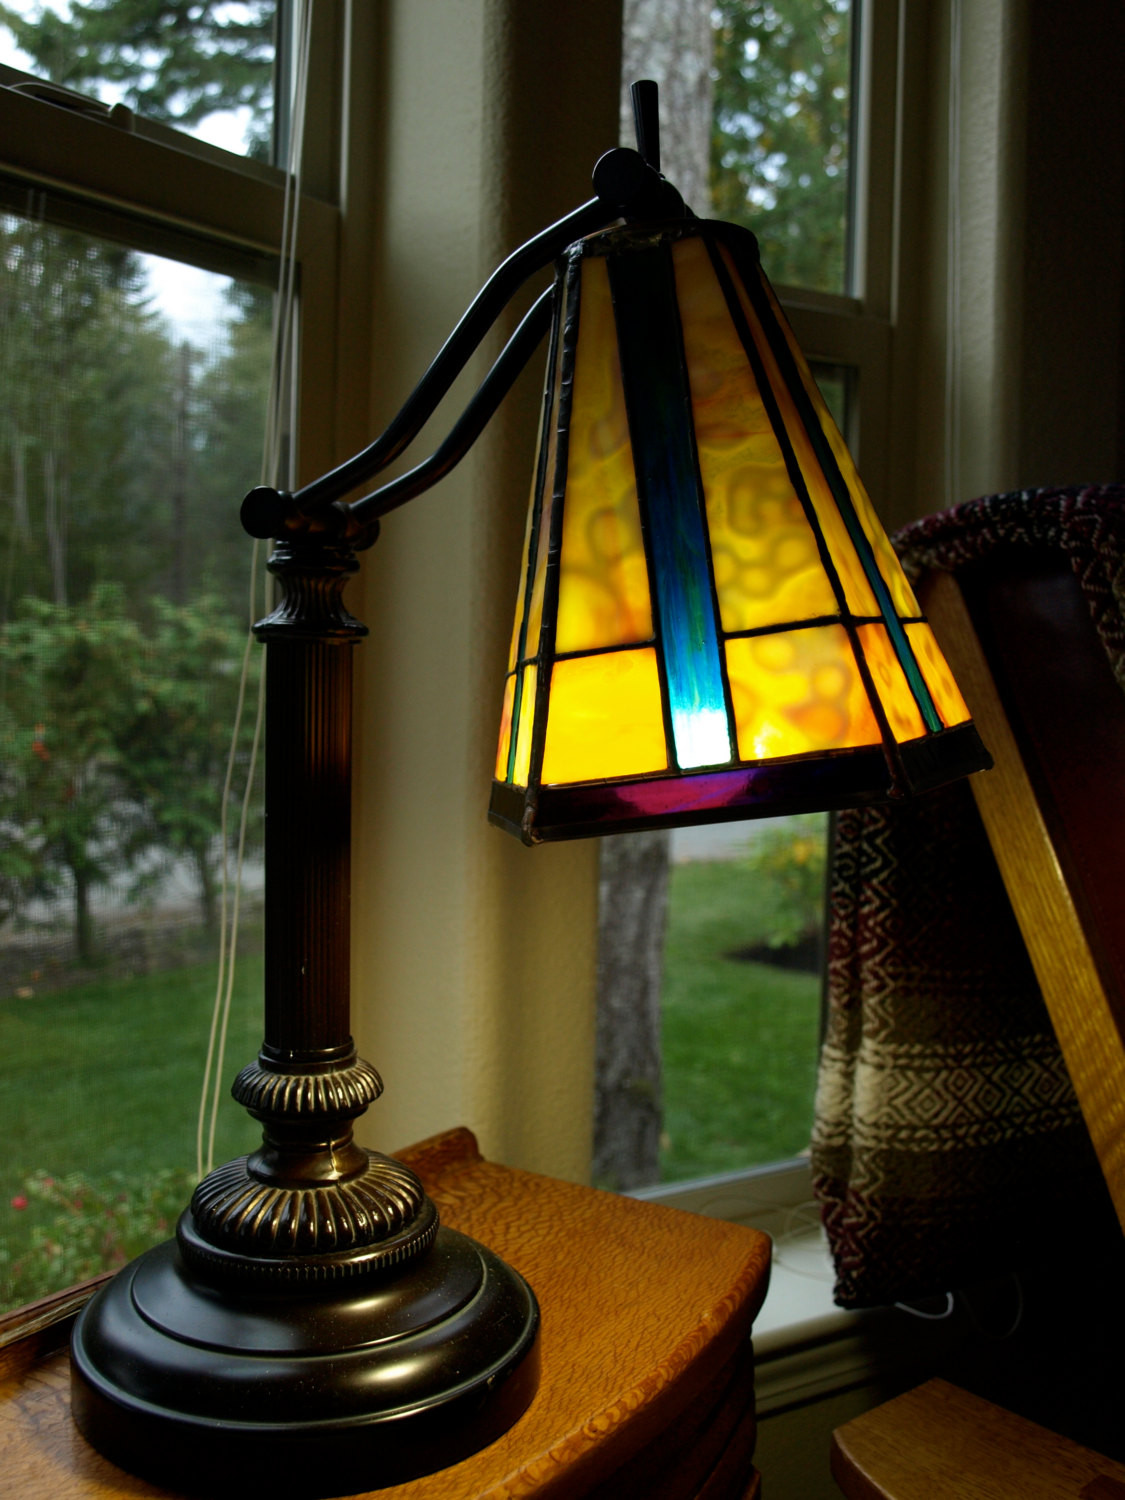 Best ideas about Stained Glass Desk Lamp . Save or Pin Stained Glass desk lamp Now.